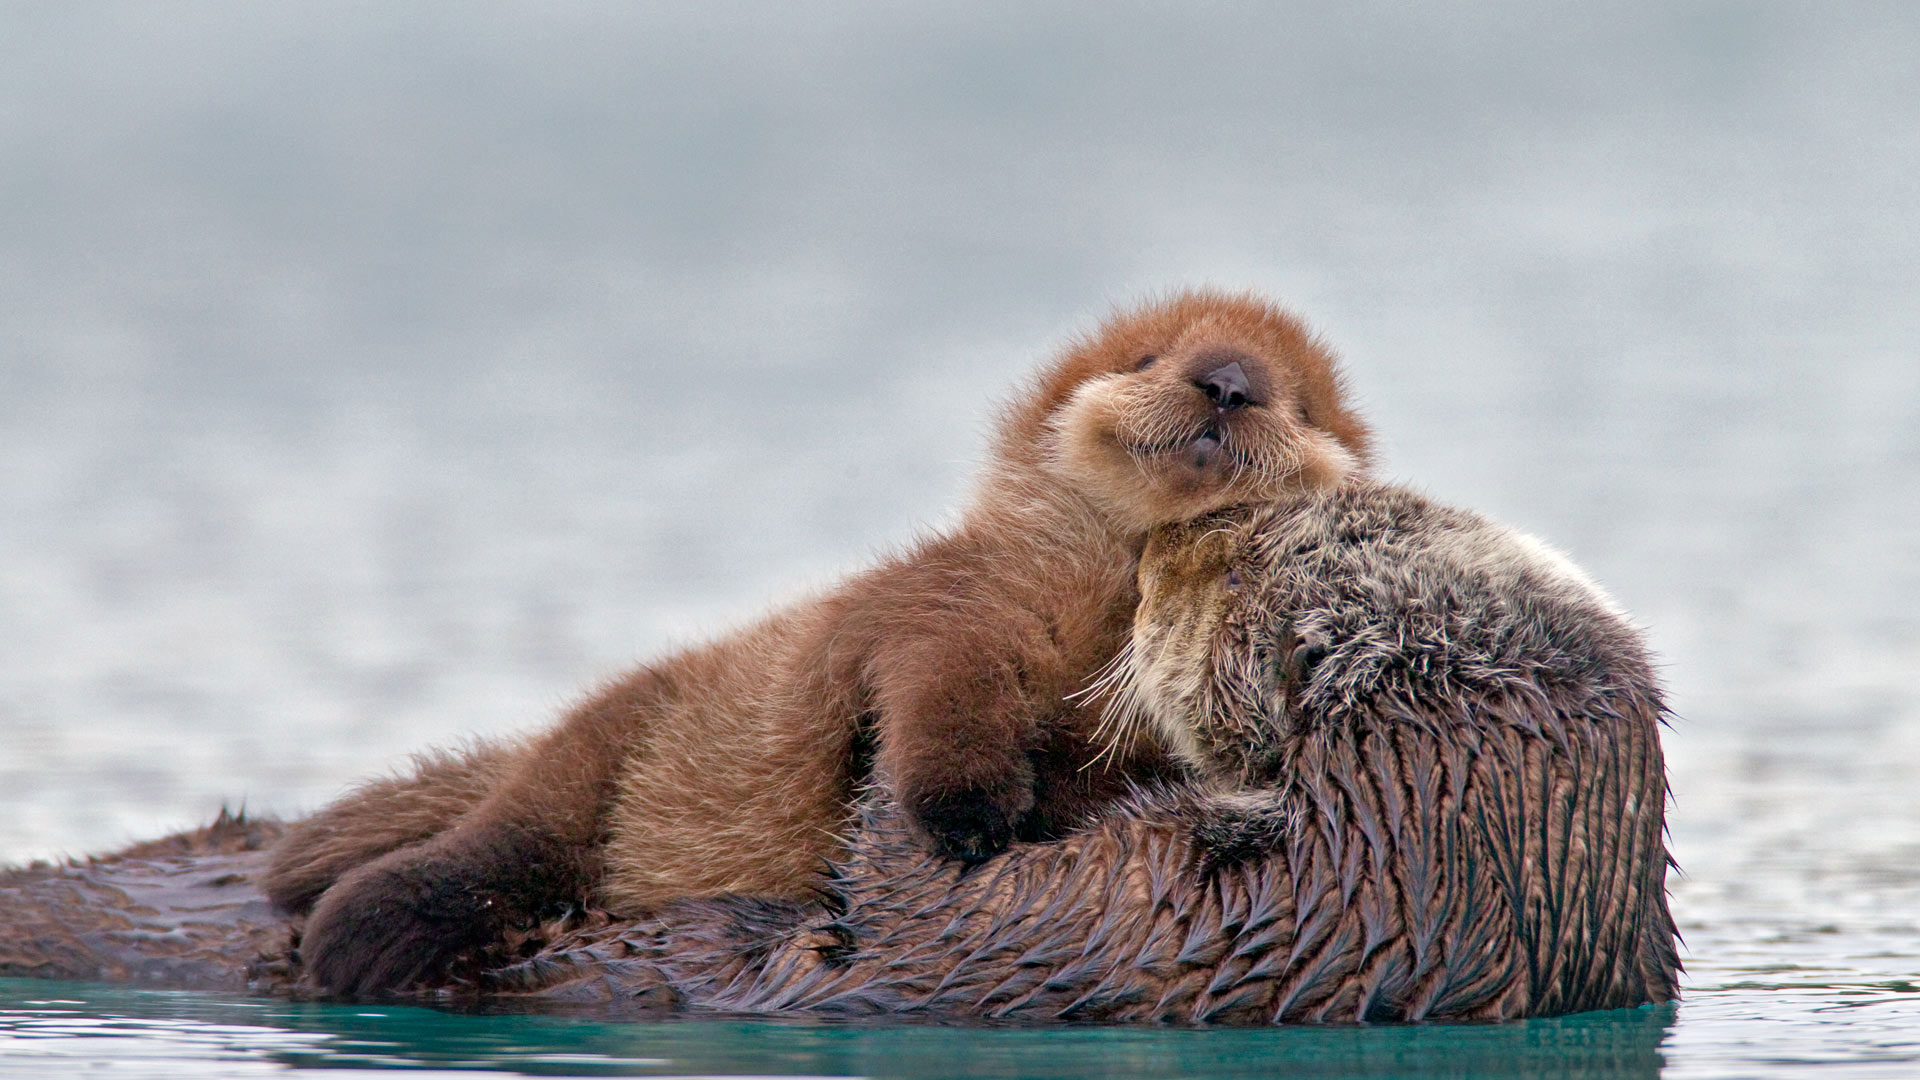 Sea otter with pup, Prince William Sound, Alaska (© AlaskaStock/Masterfile)